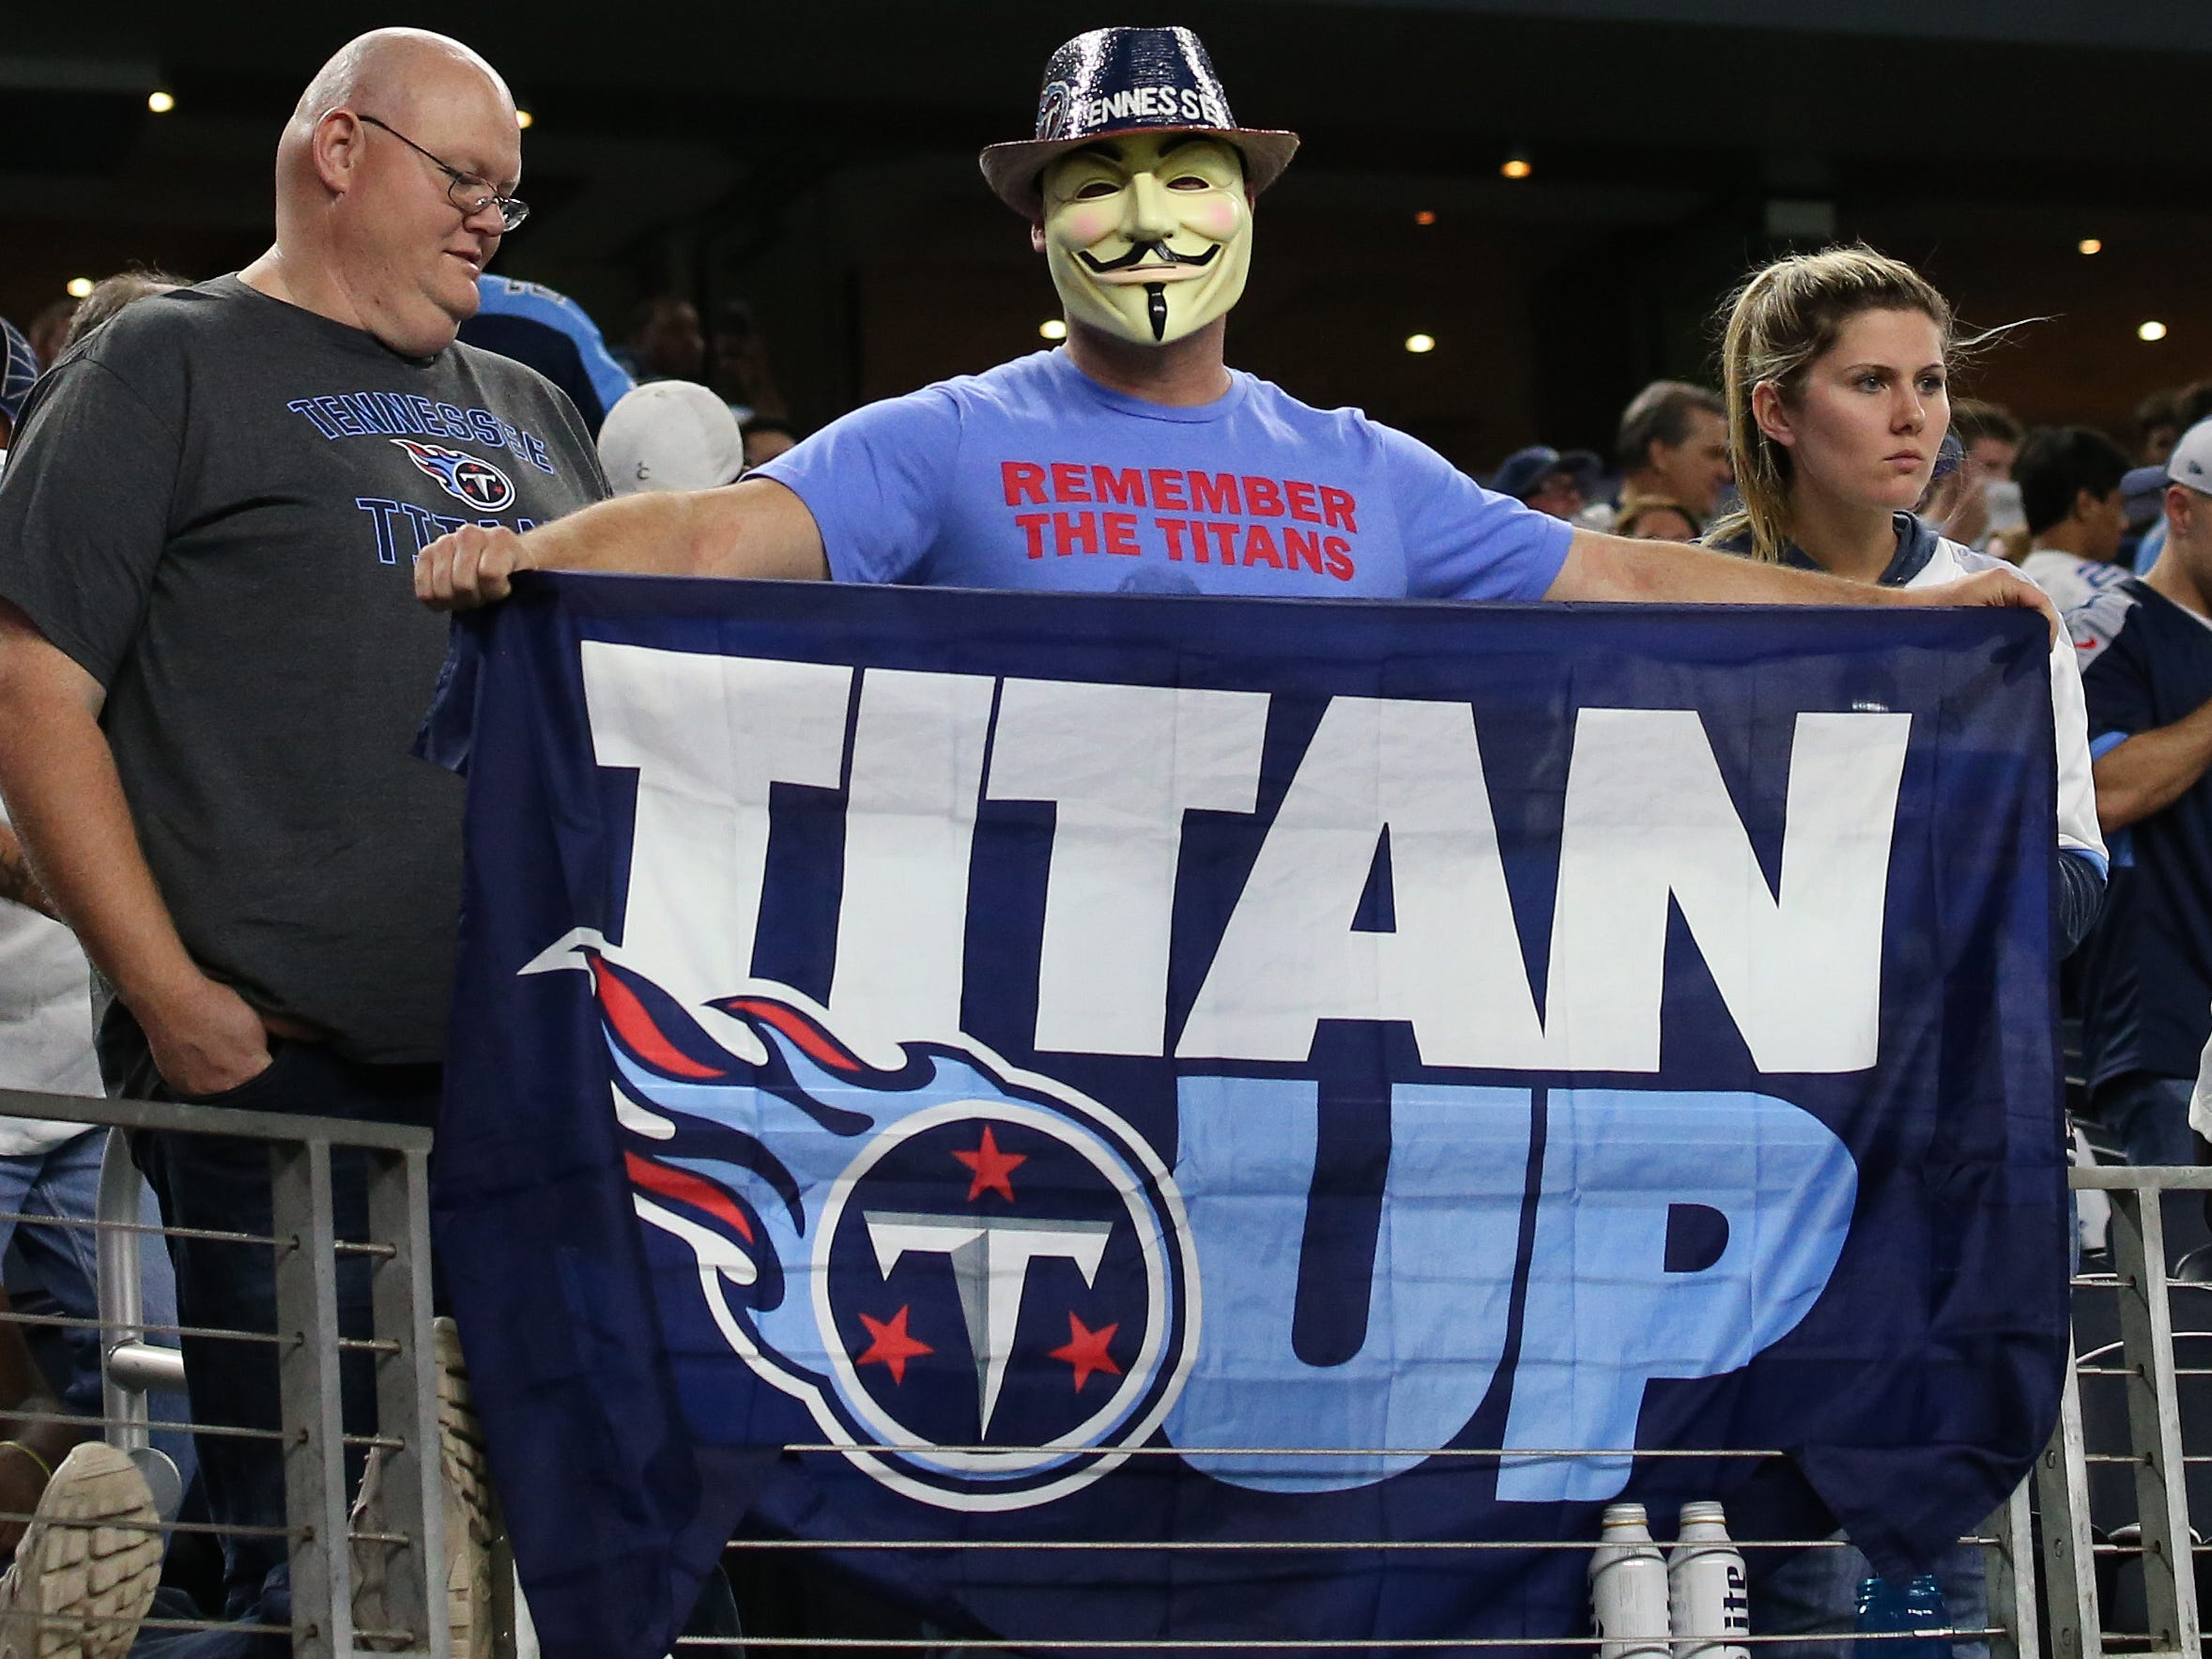 """A Tennessee Titans fan holds up a """"Titan Up"""" flag during the game against the Dallas Cowboys at AT&T Stadium."""